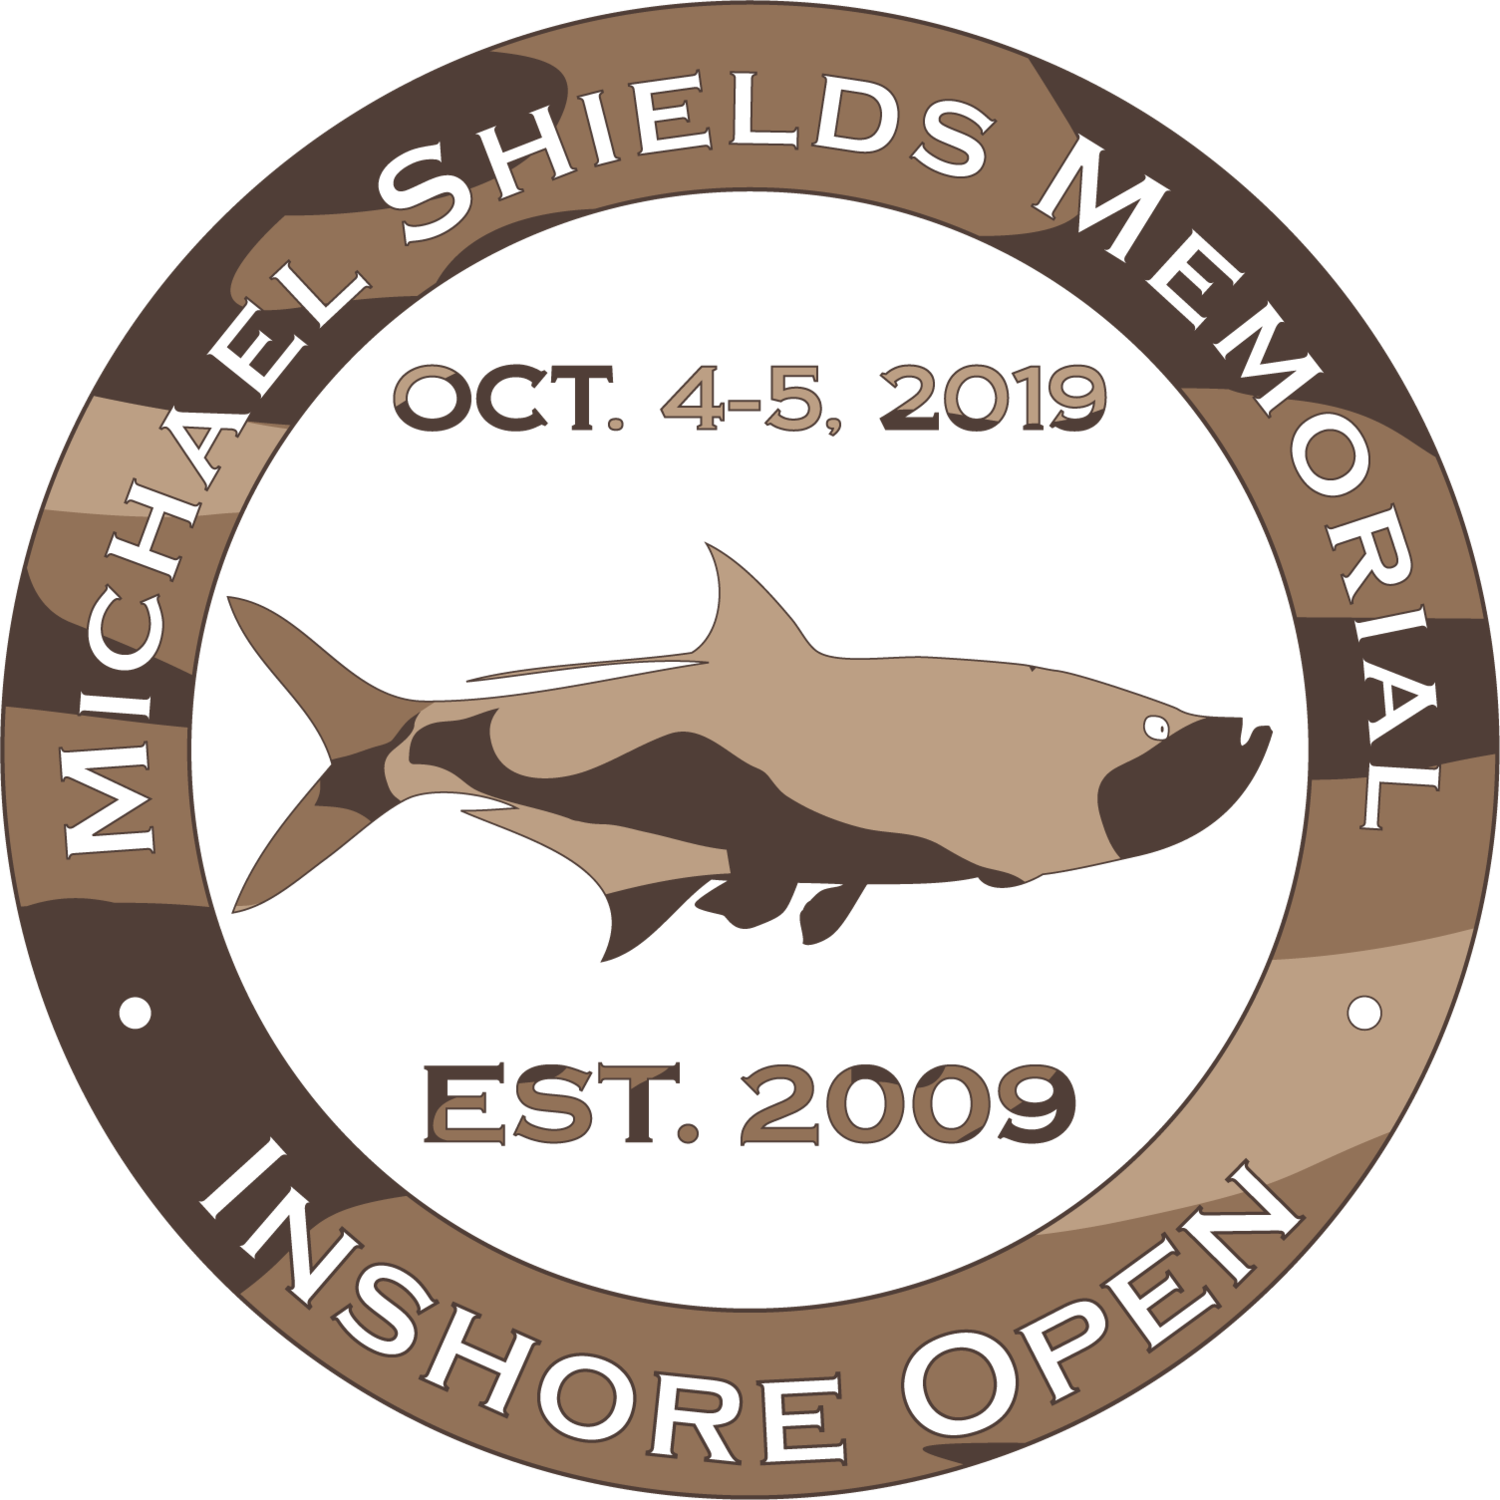 Michael Shield Memorial Inshore open fishing tournament